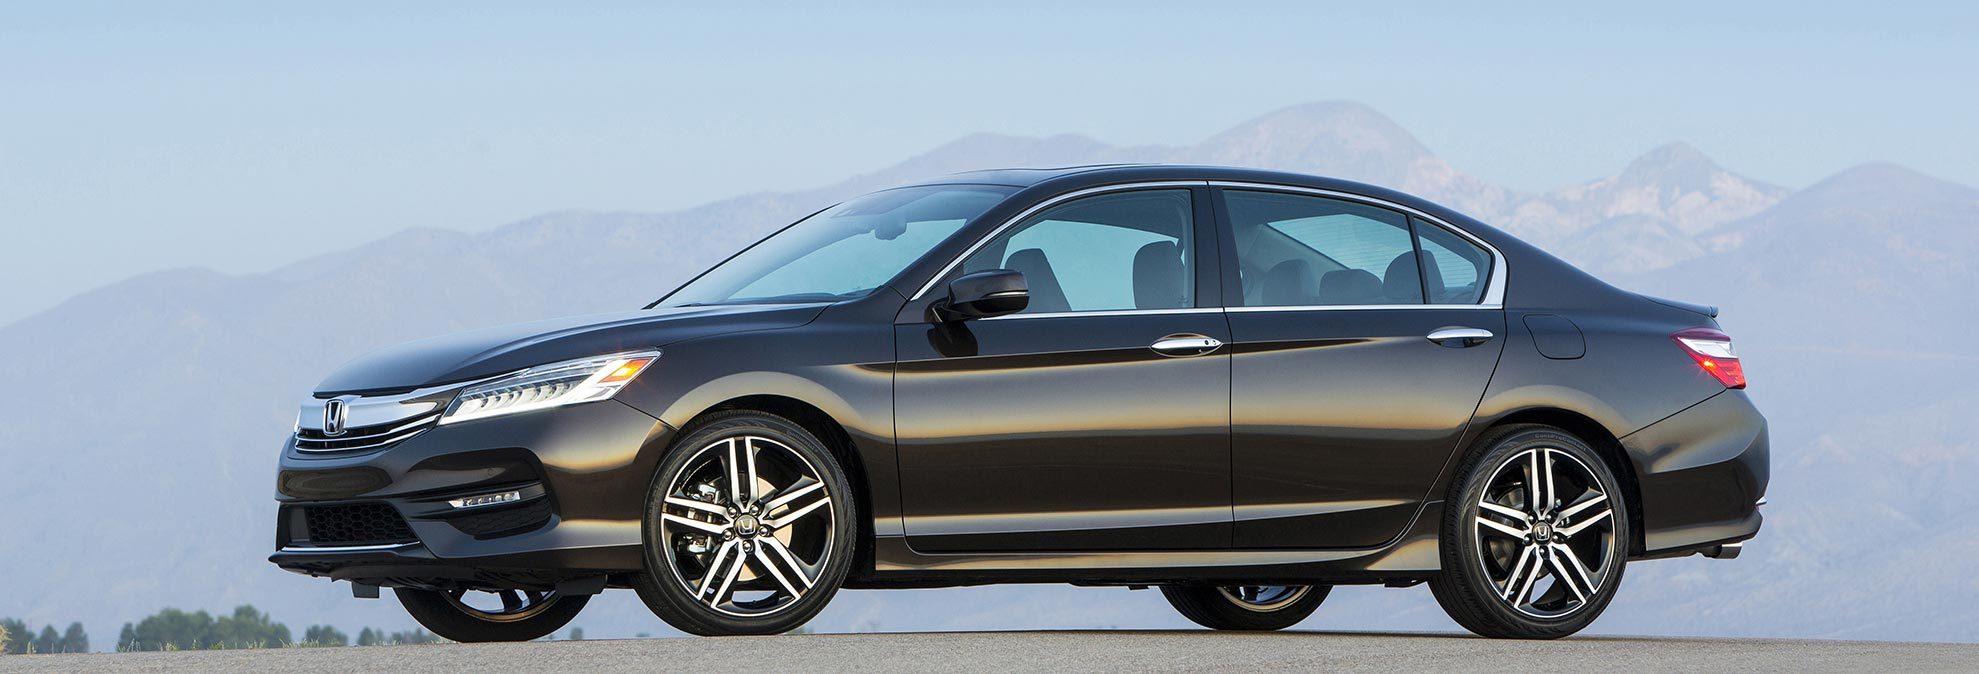 Accord Vs Camry >> Honda Accord Vs Toyota Camry Which Should I Buy Consumer Reports